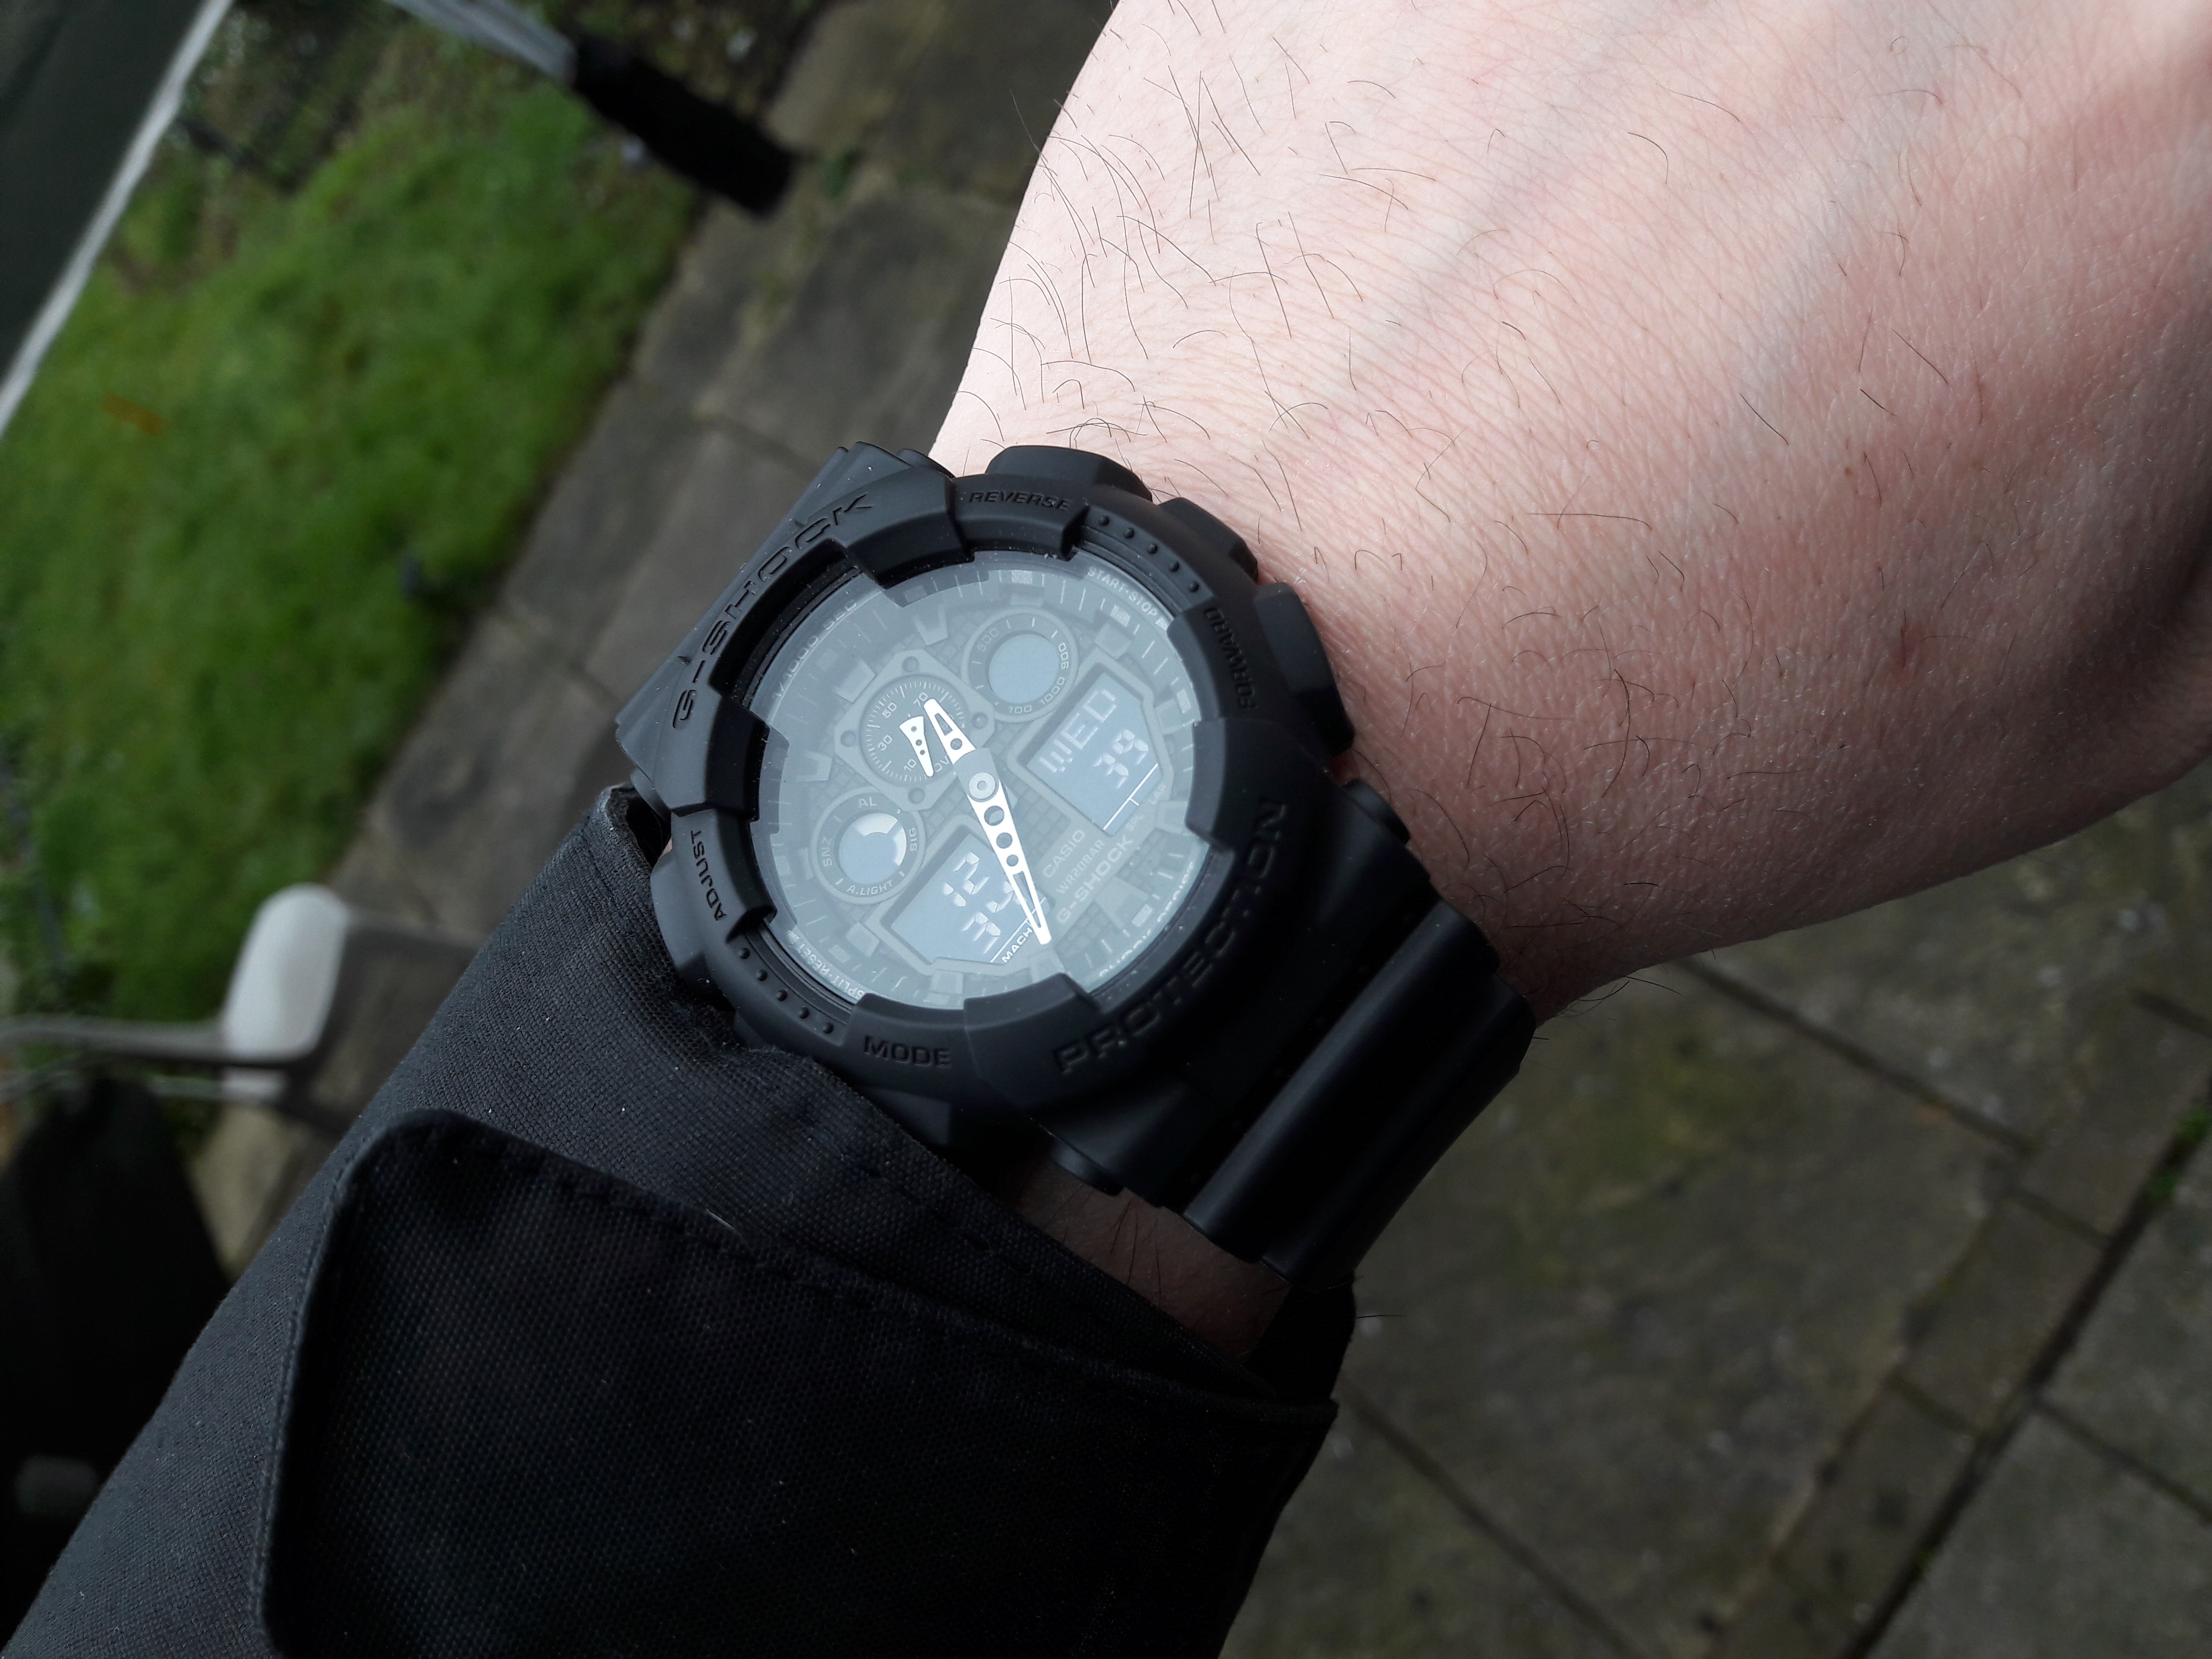 b6ec3e245d51d As always gshock serving great watch which make a job very well. All  condition -proof.Tough and reliable. Love black colour watches and thats is  great ...